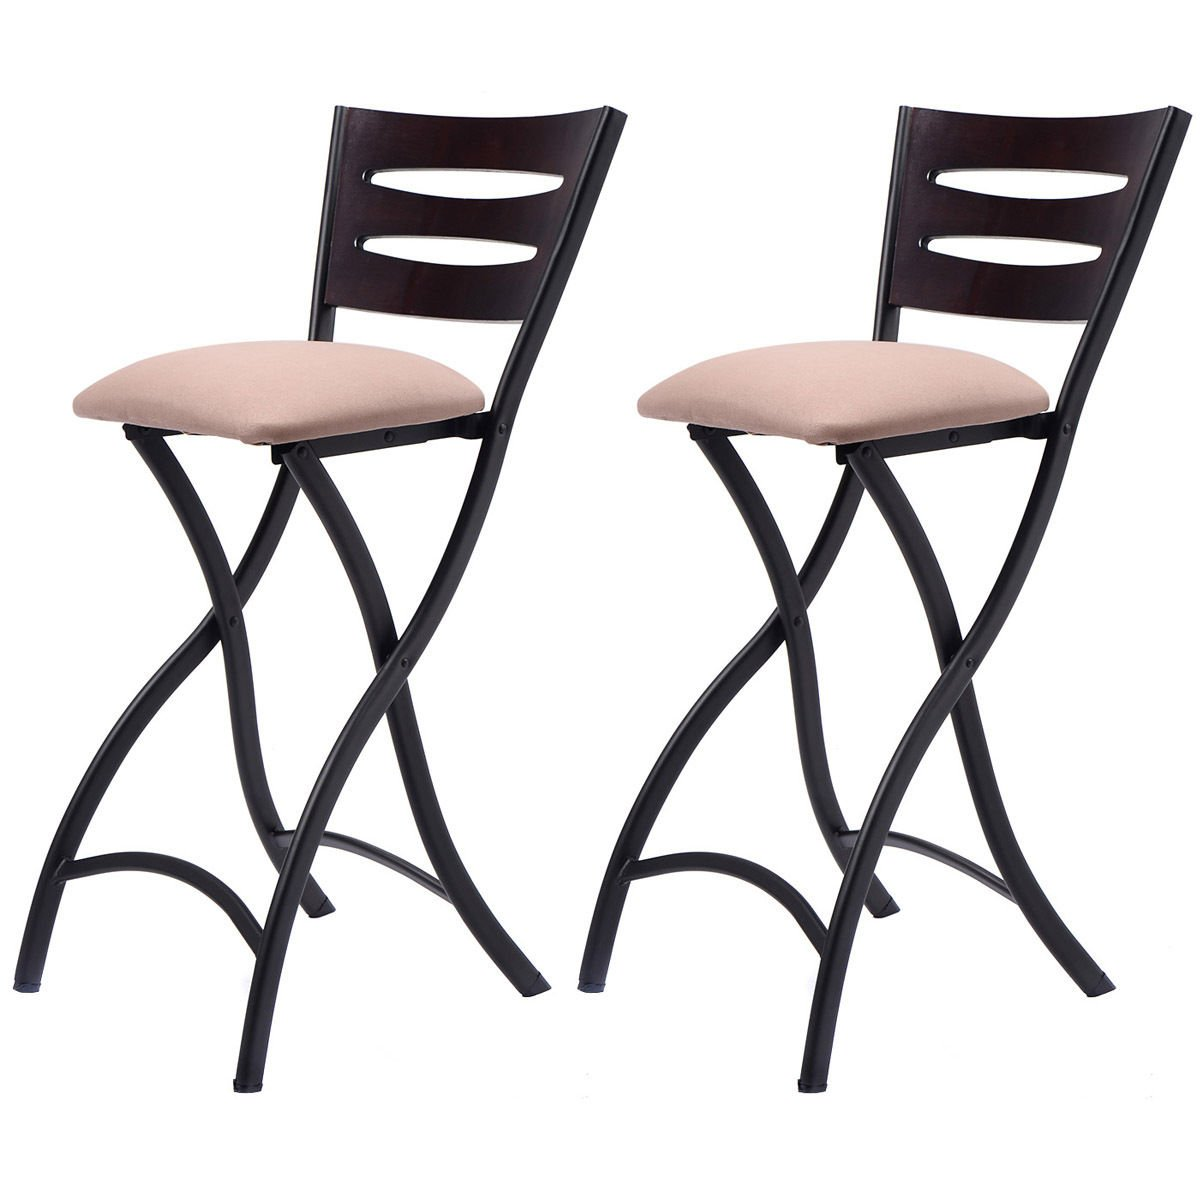 New Set of 2 Folding Bar Stools Counter Height Bistro Dining Kitchen Pub Chair